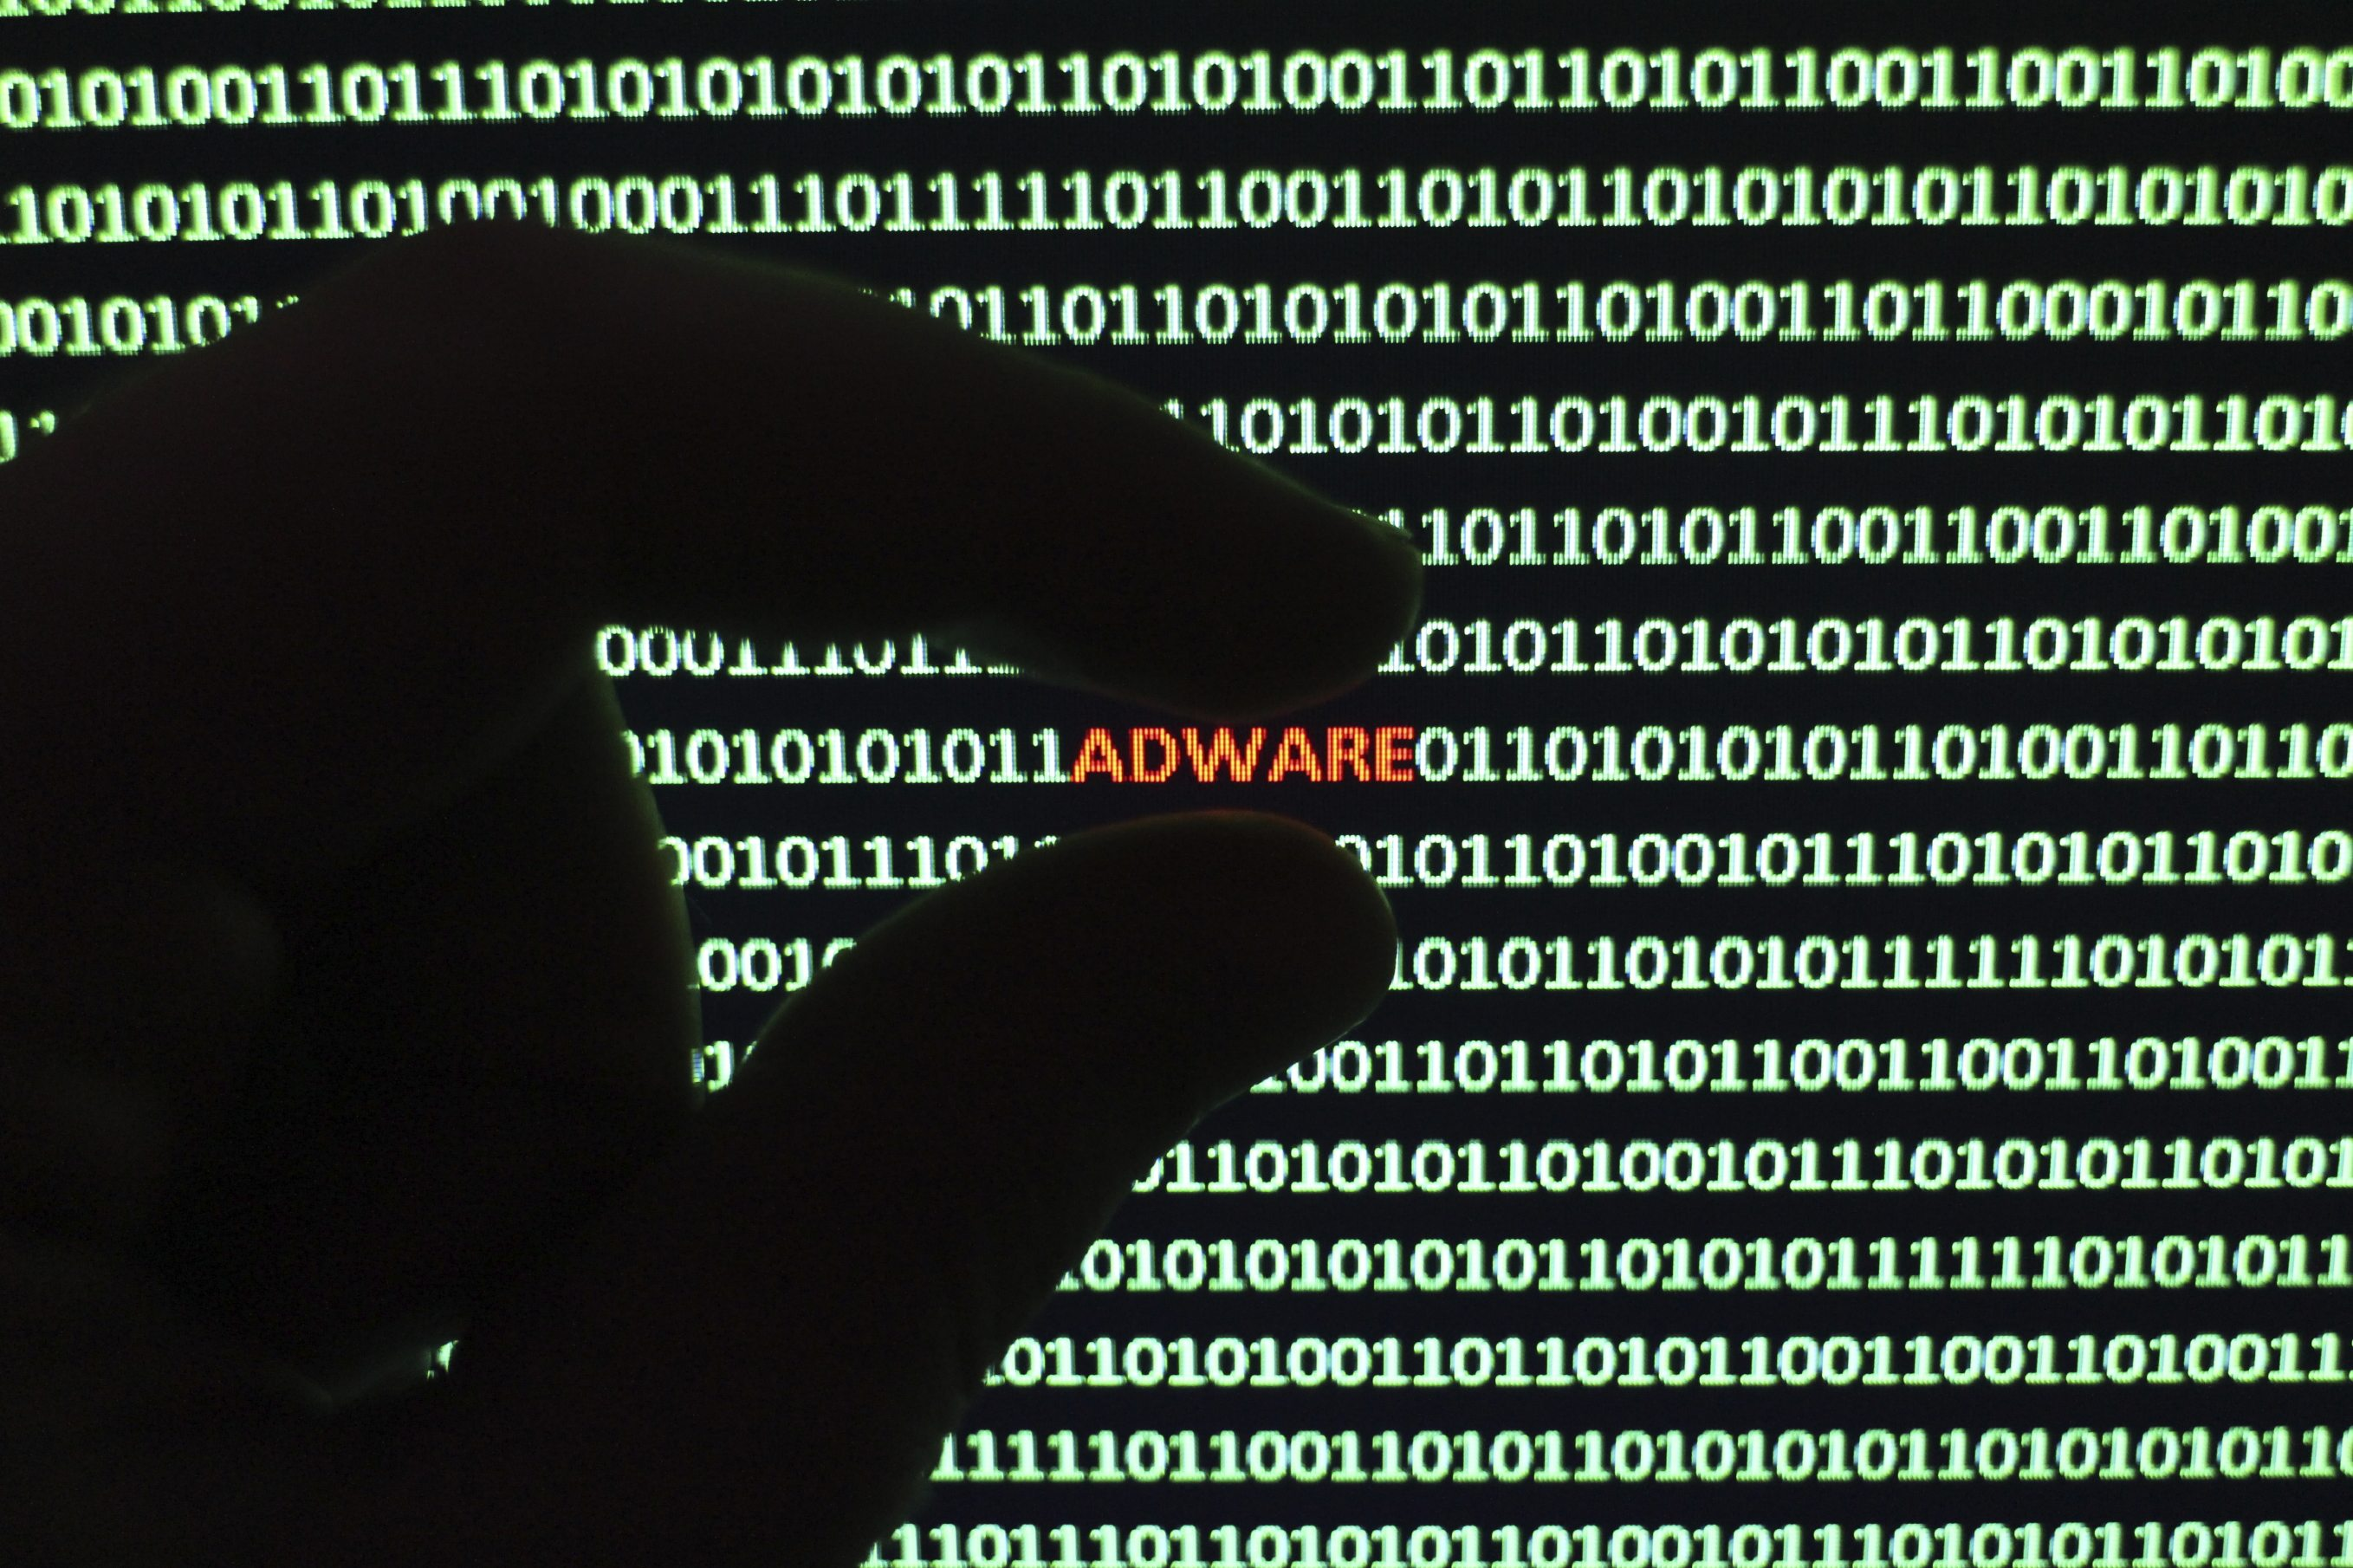 Adware - Hack Brief: Dangerous  Adware Infects a Quarter Billion PCs